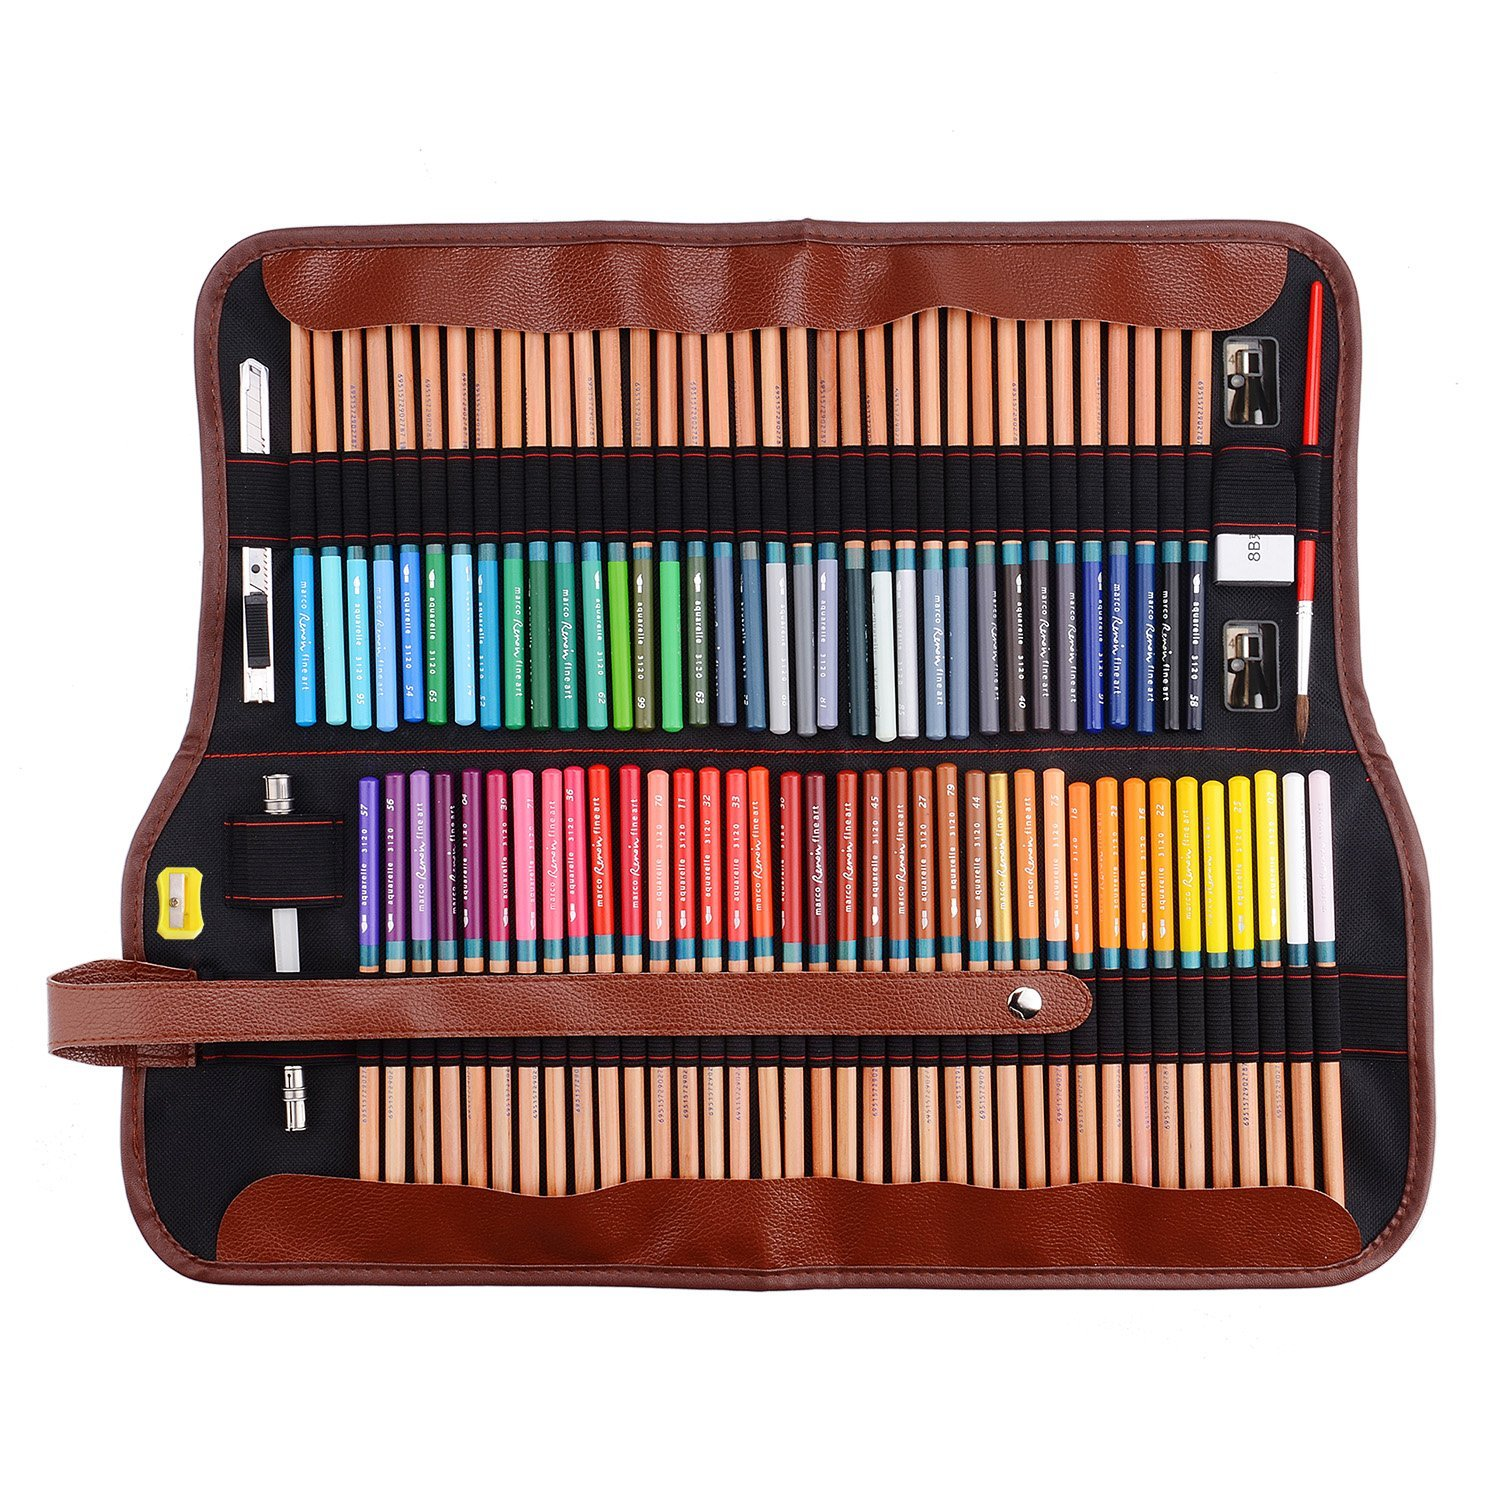 Marco Renoir Fine Art 72 Water Color Drawing Pencils +Eraser +pencil extender Set With Metal Tin and Roll Up Pouch Canvas Pen Bag for Artist Writing Sketching Colorful Blessings Cards